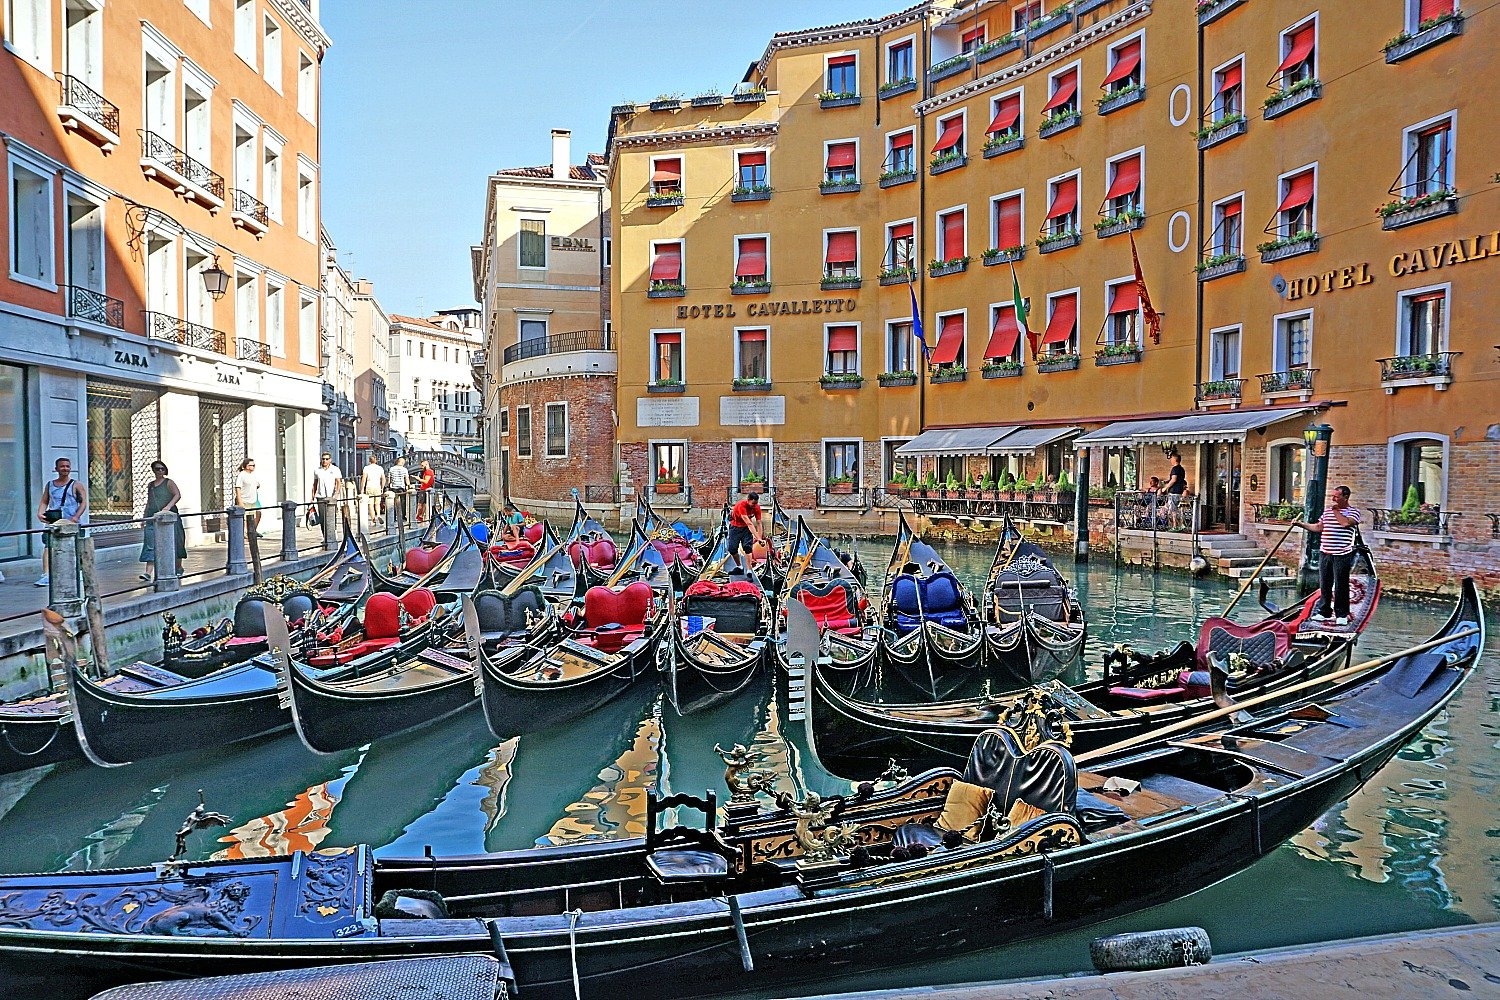 Take a gondola ride in Venice.